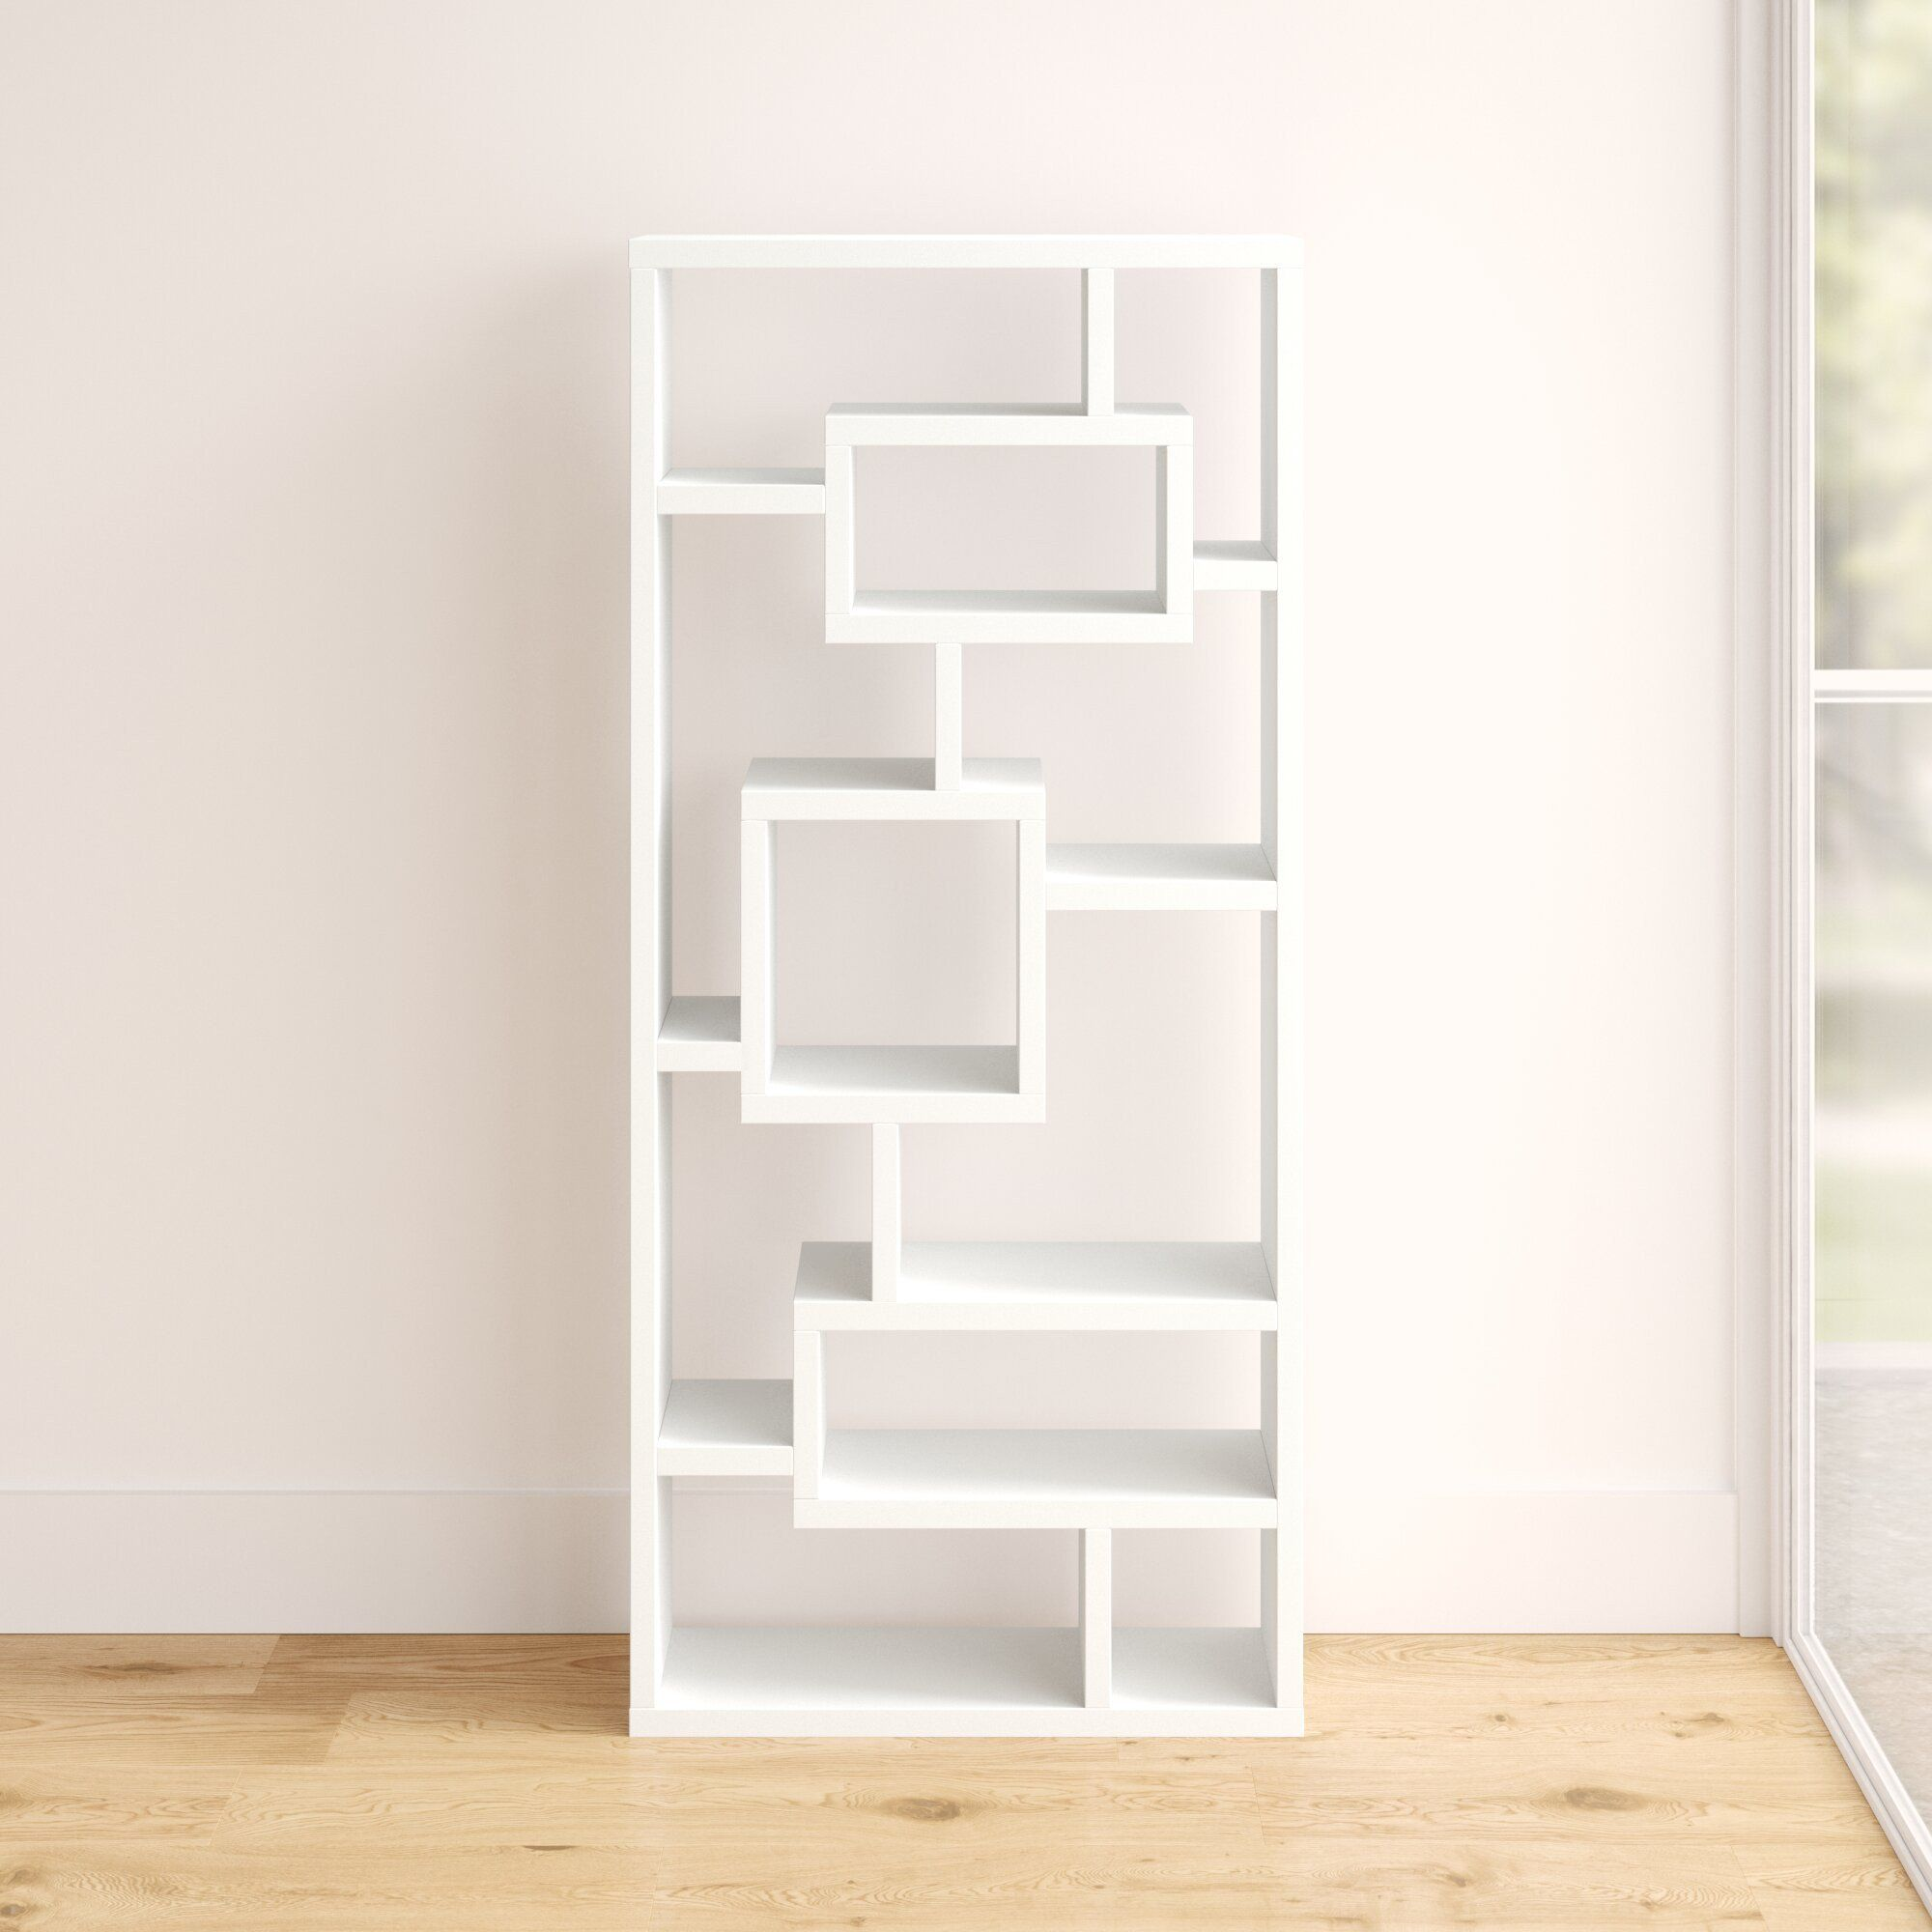 6 Inch Deep Bookcase Awesome 24 Inch Wide Bookcase You Ll Love In 2019 In 2020 Bookcase Etagere Bookcase Deep Bookcase